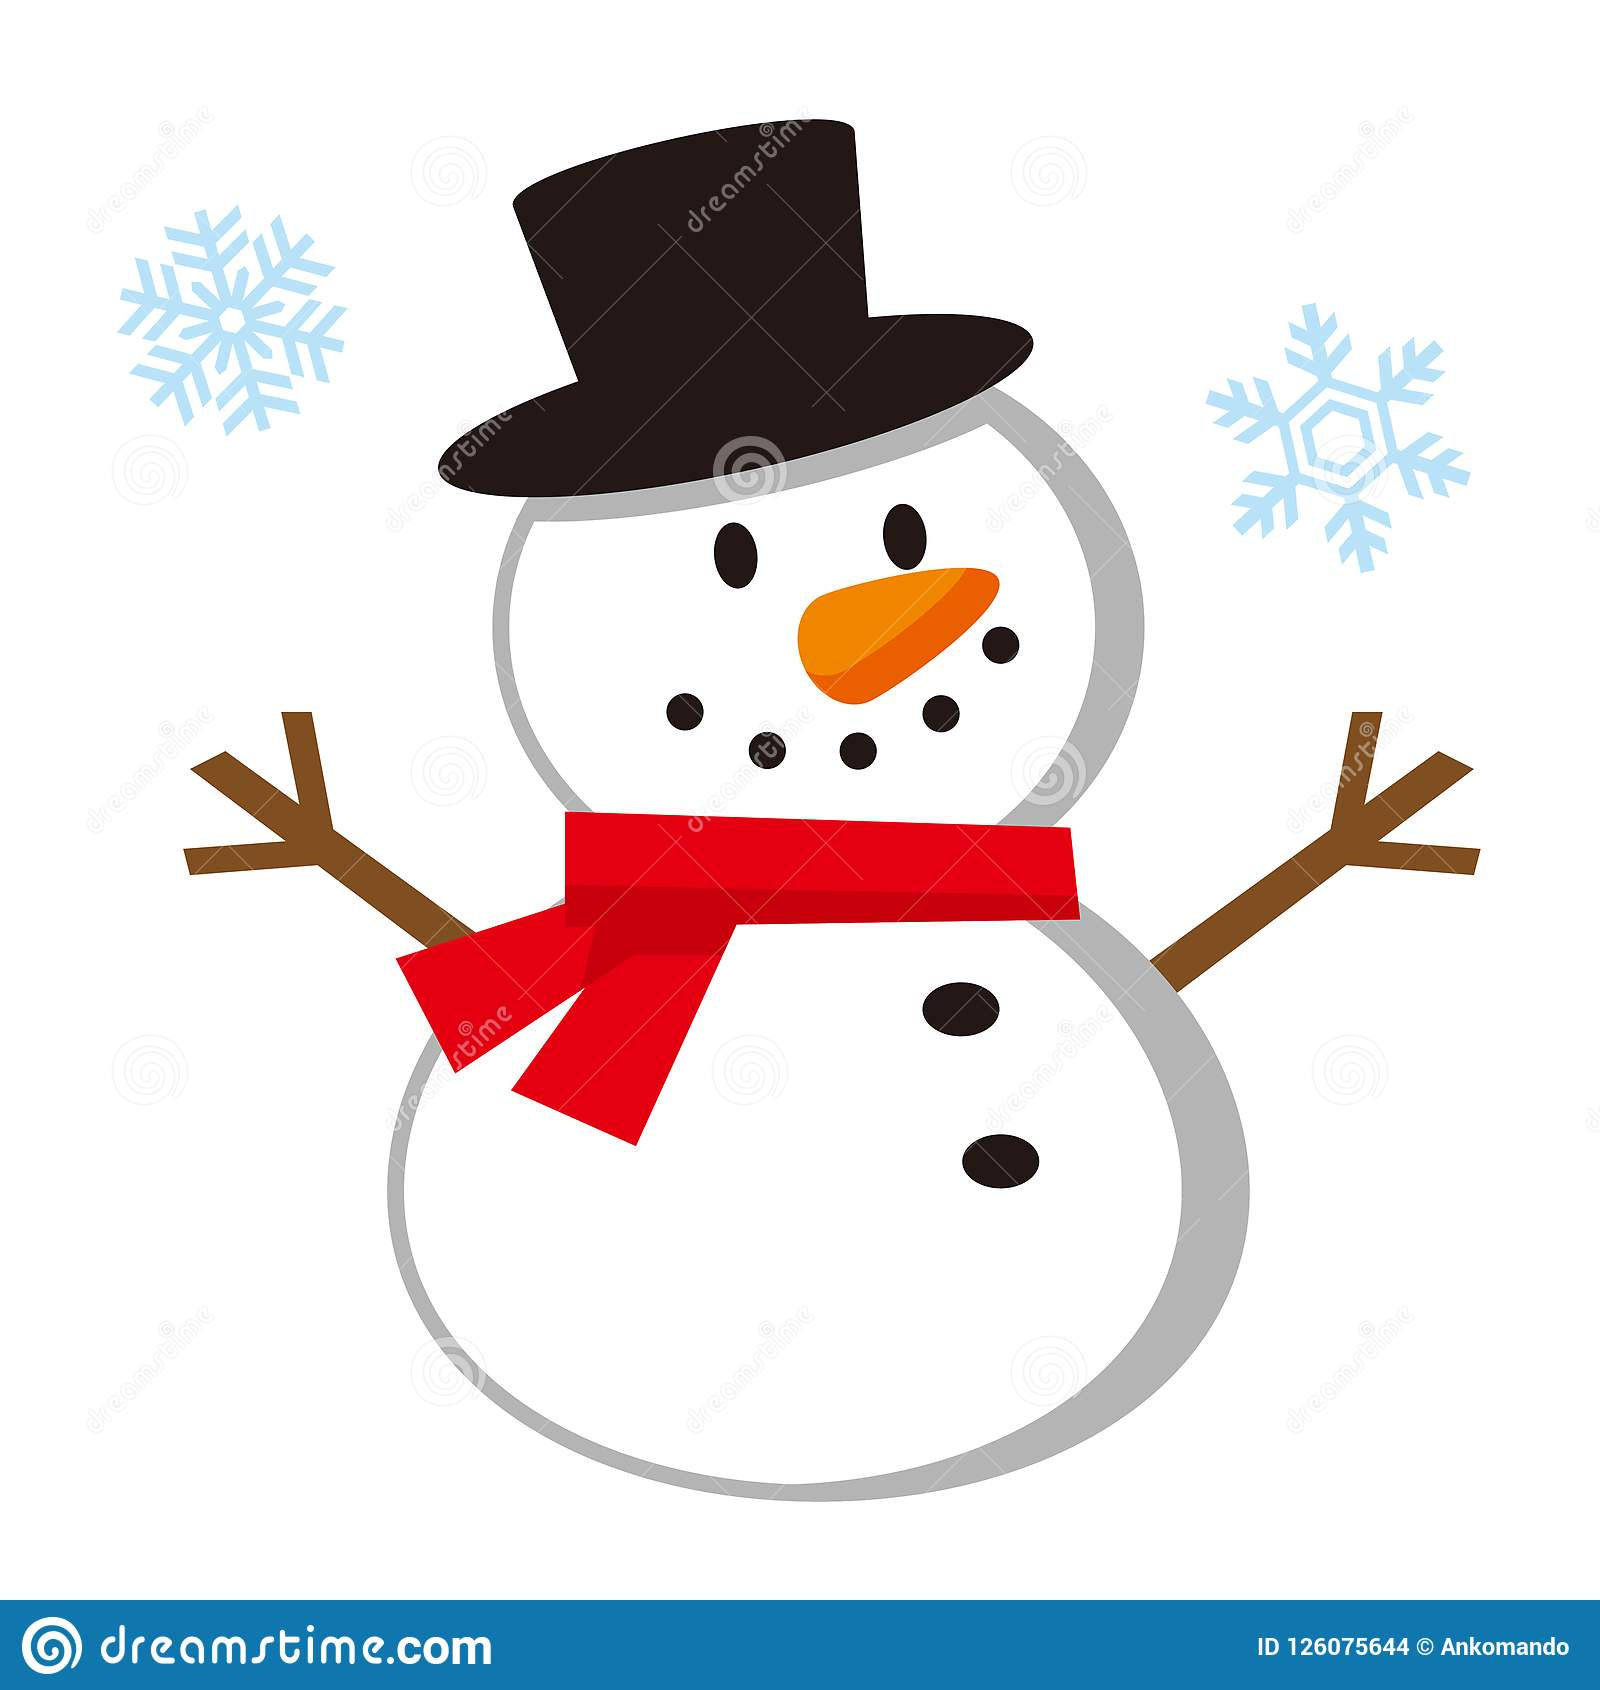 Cute Snowman Illustration Stock Vector Illustration Of Design 126075644